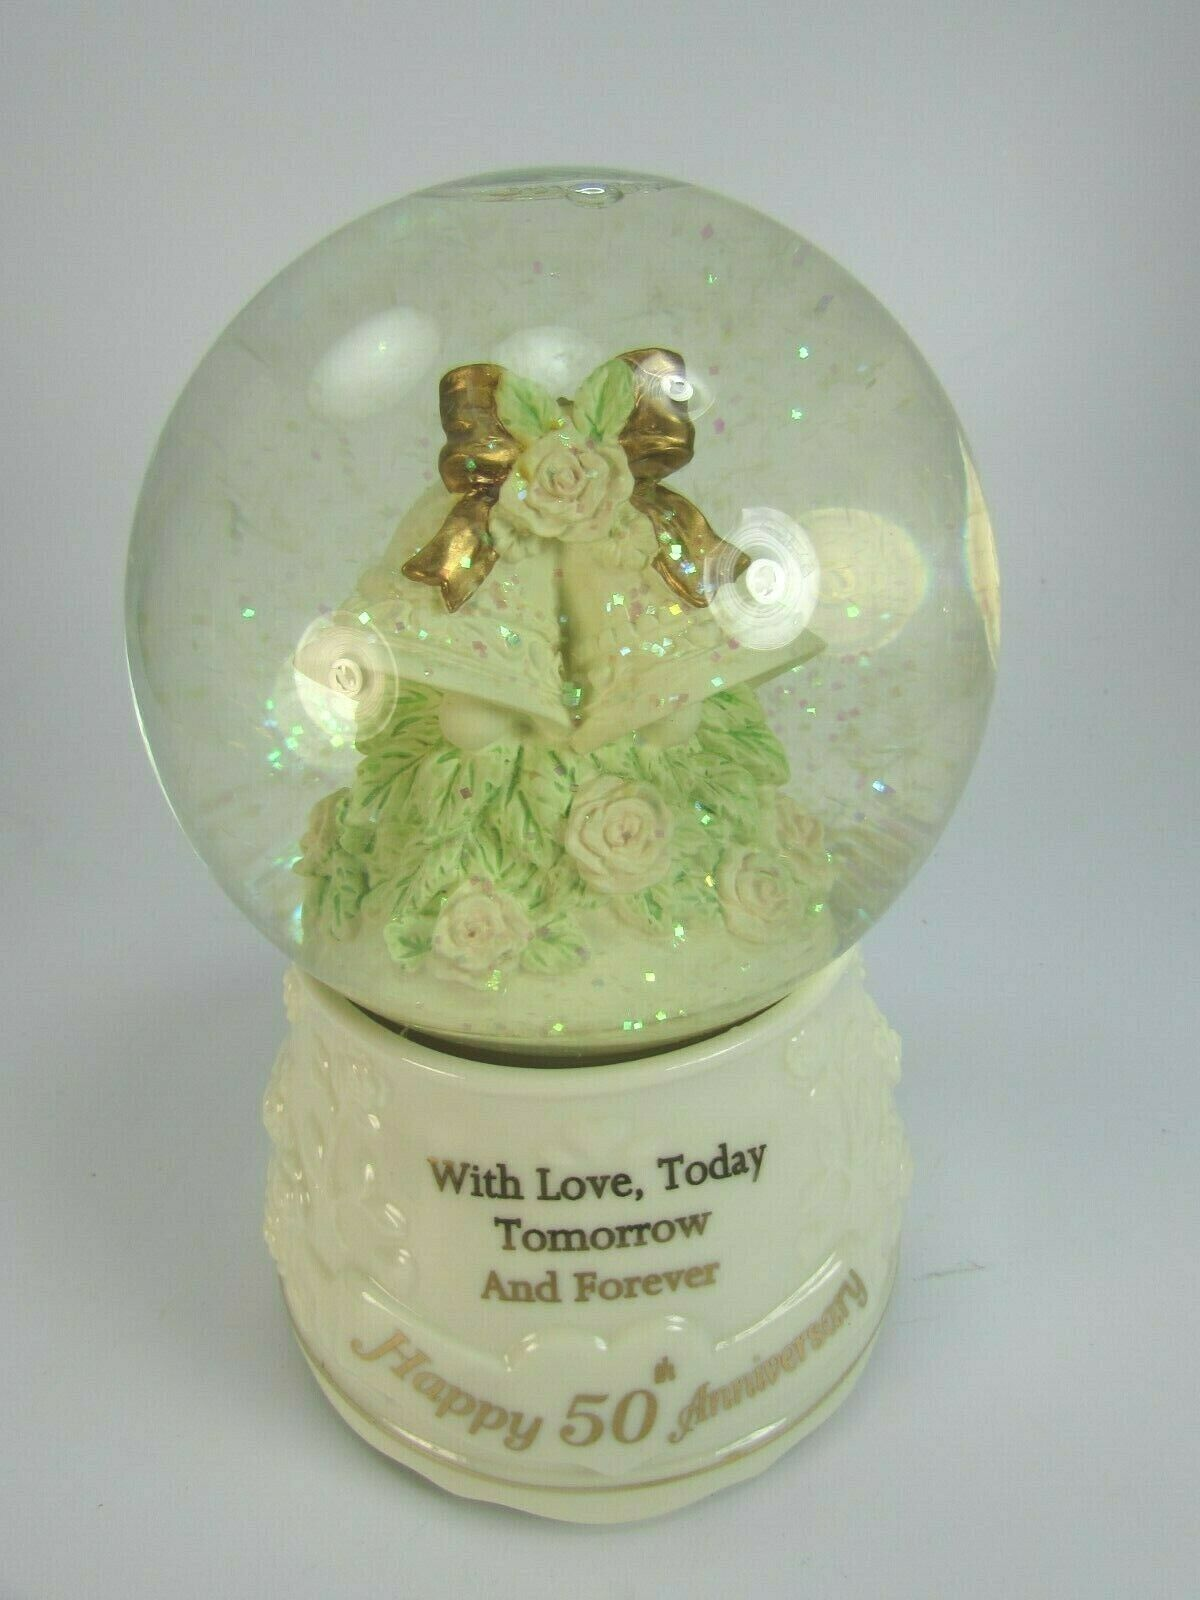 Primary image for The San Francisco Music Box Company 50th Anniversary Waltz Snow Globe 30654